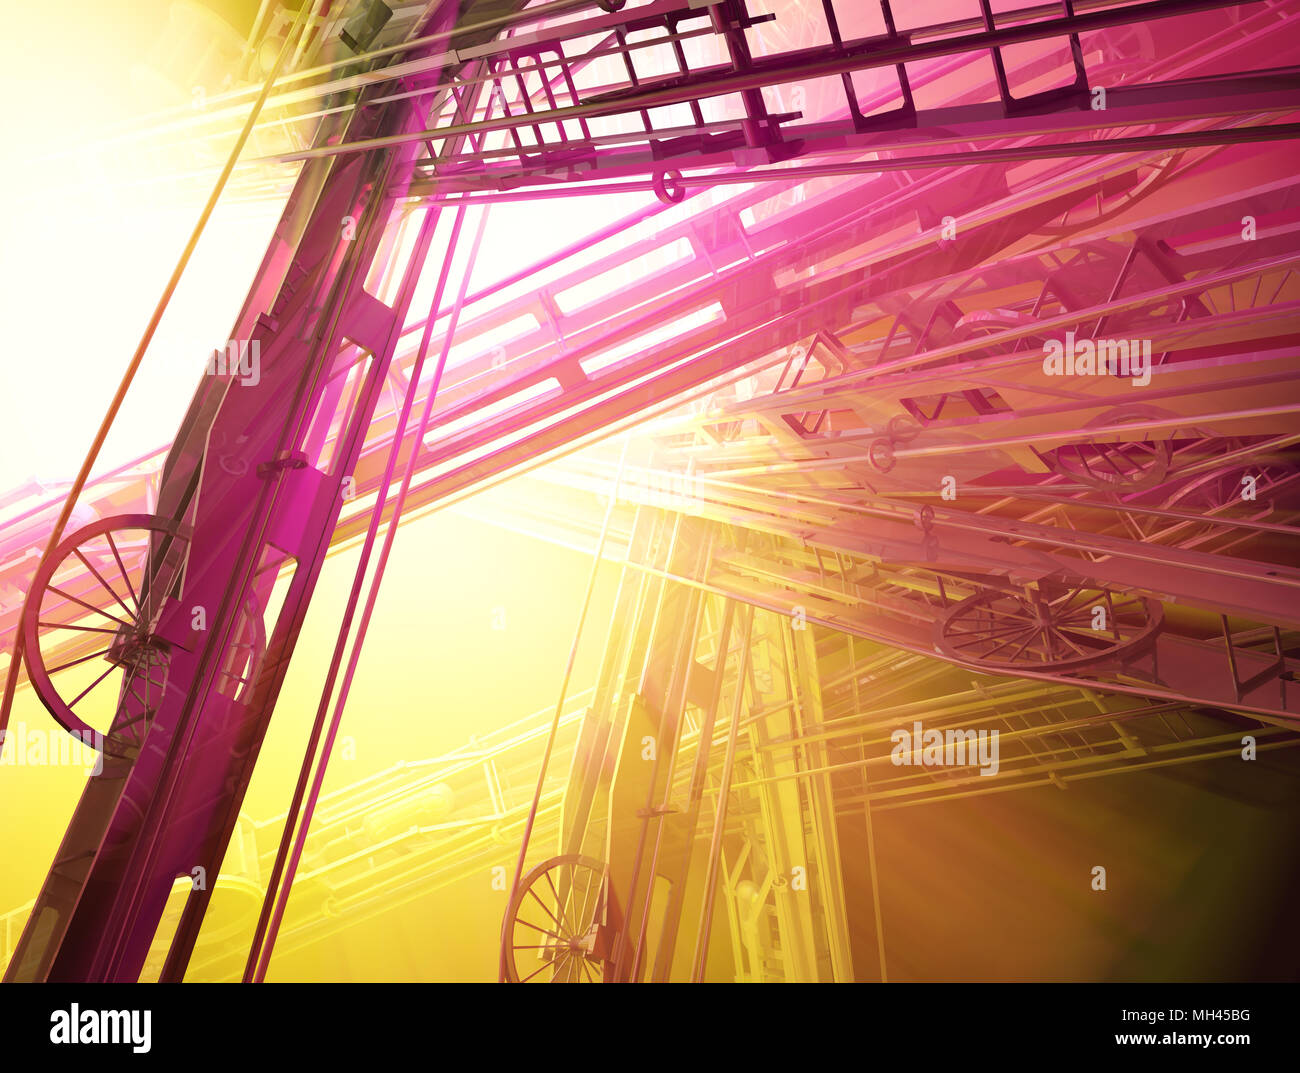 Abstract 3d industrial construction light spectrum illustration background - Stock Image